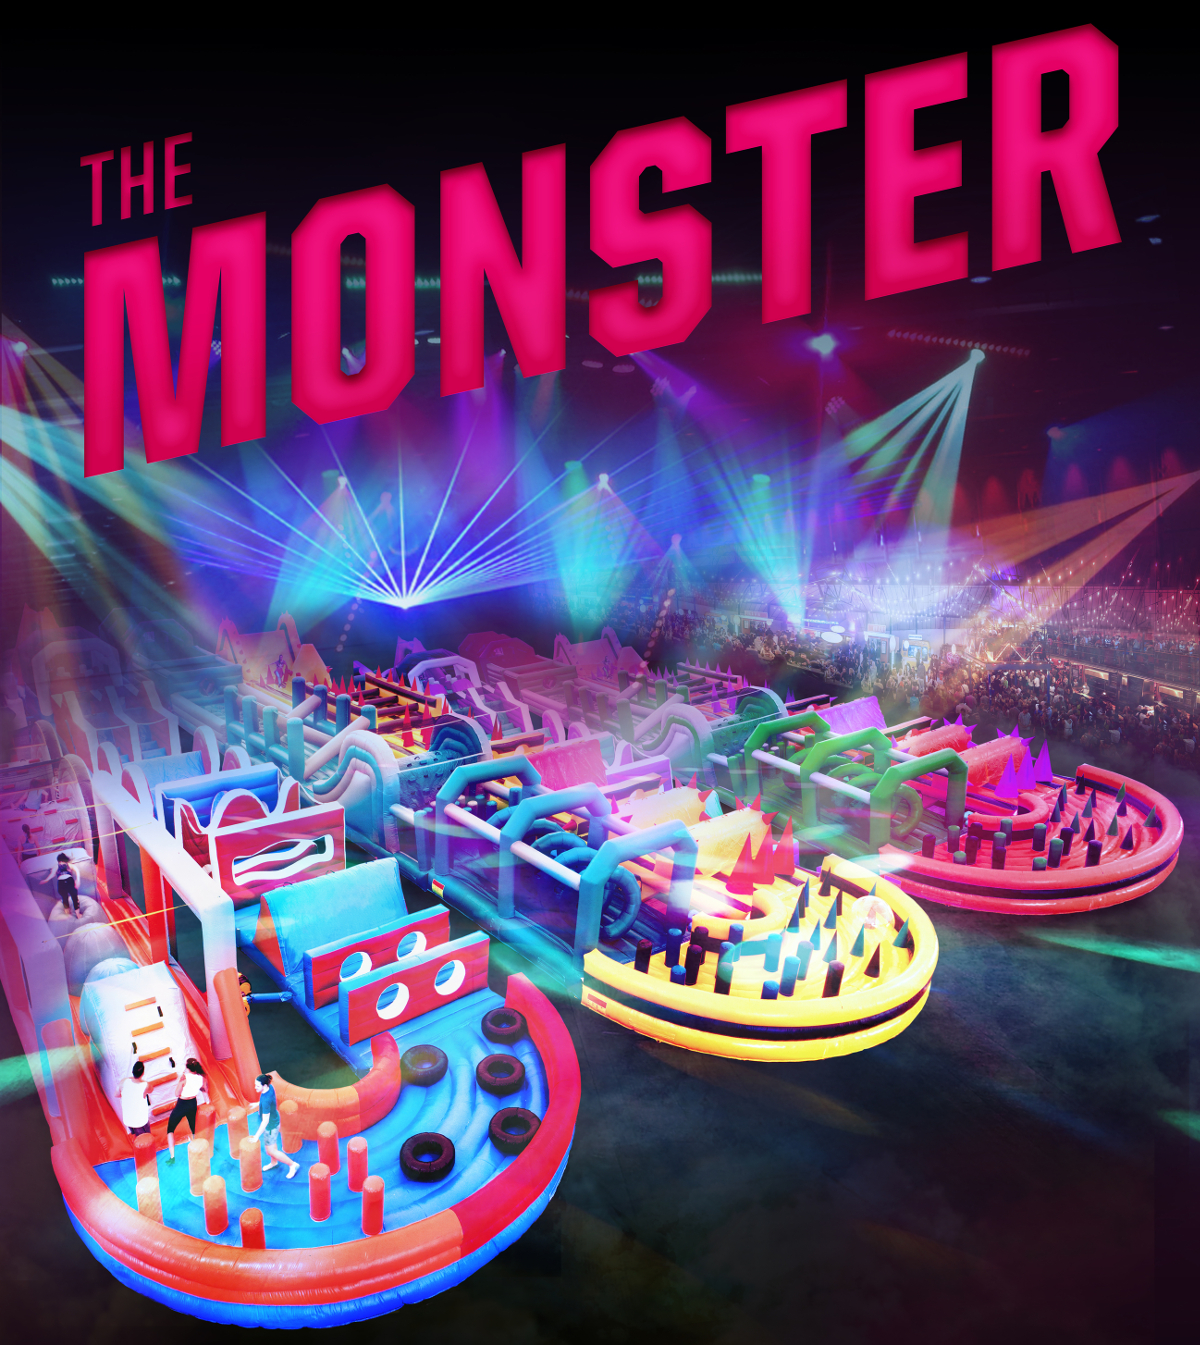 The Monster inflatable and Ed Sheeran this May in Manchester